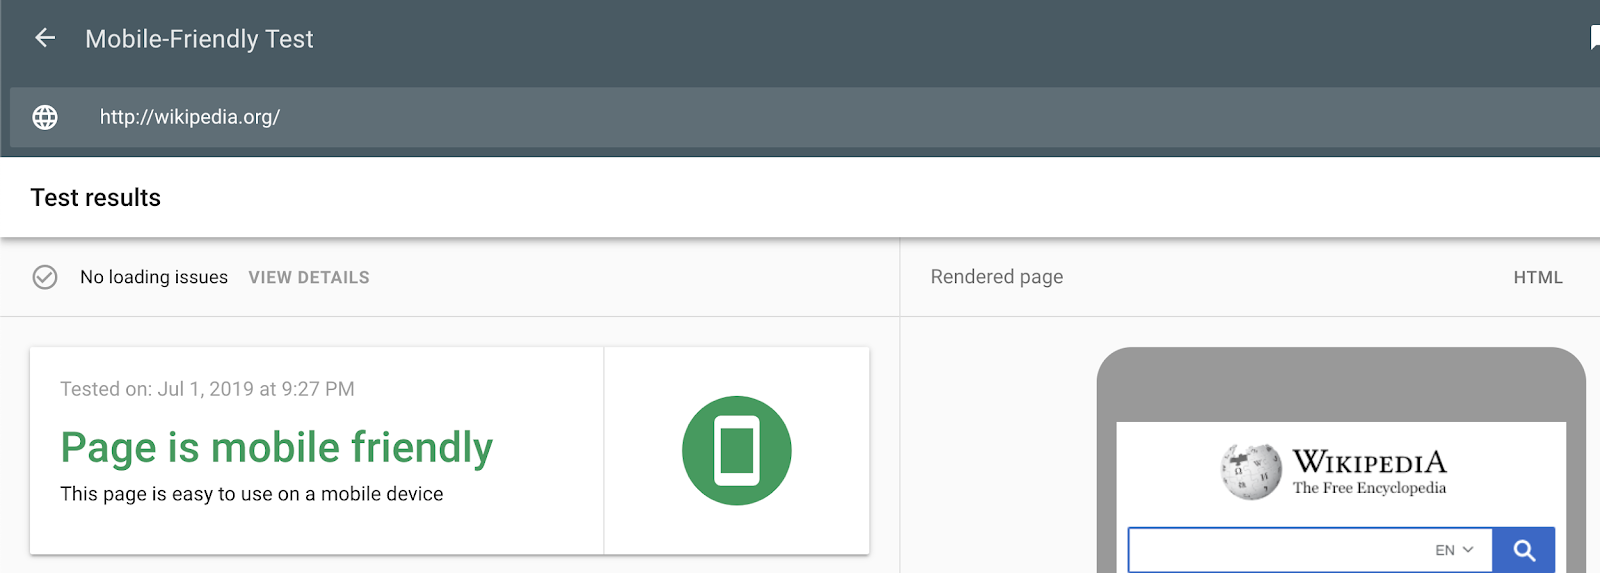 Google's Mobile Friendly tool